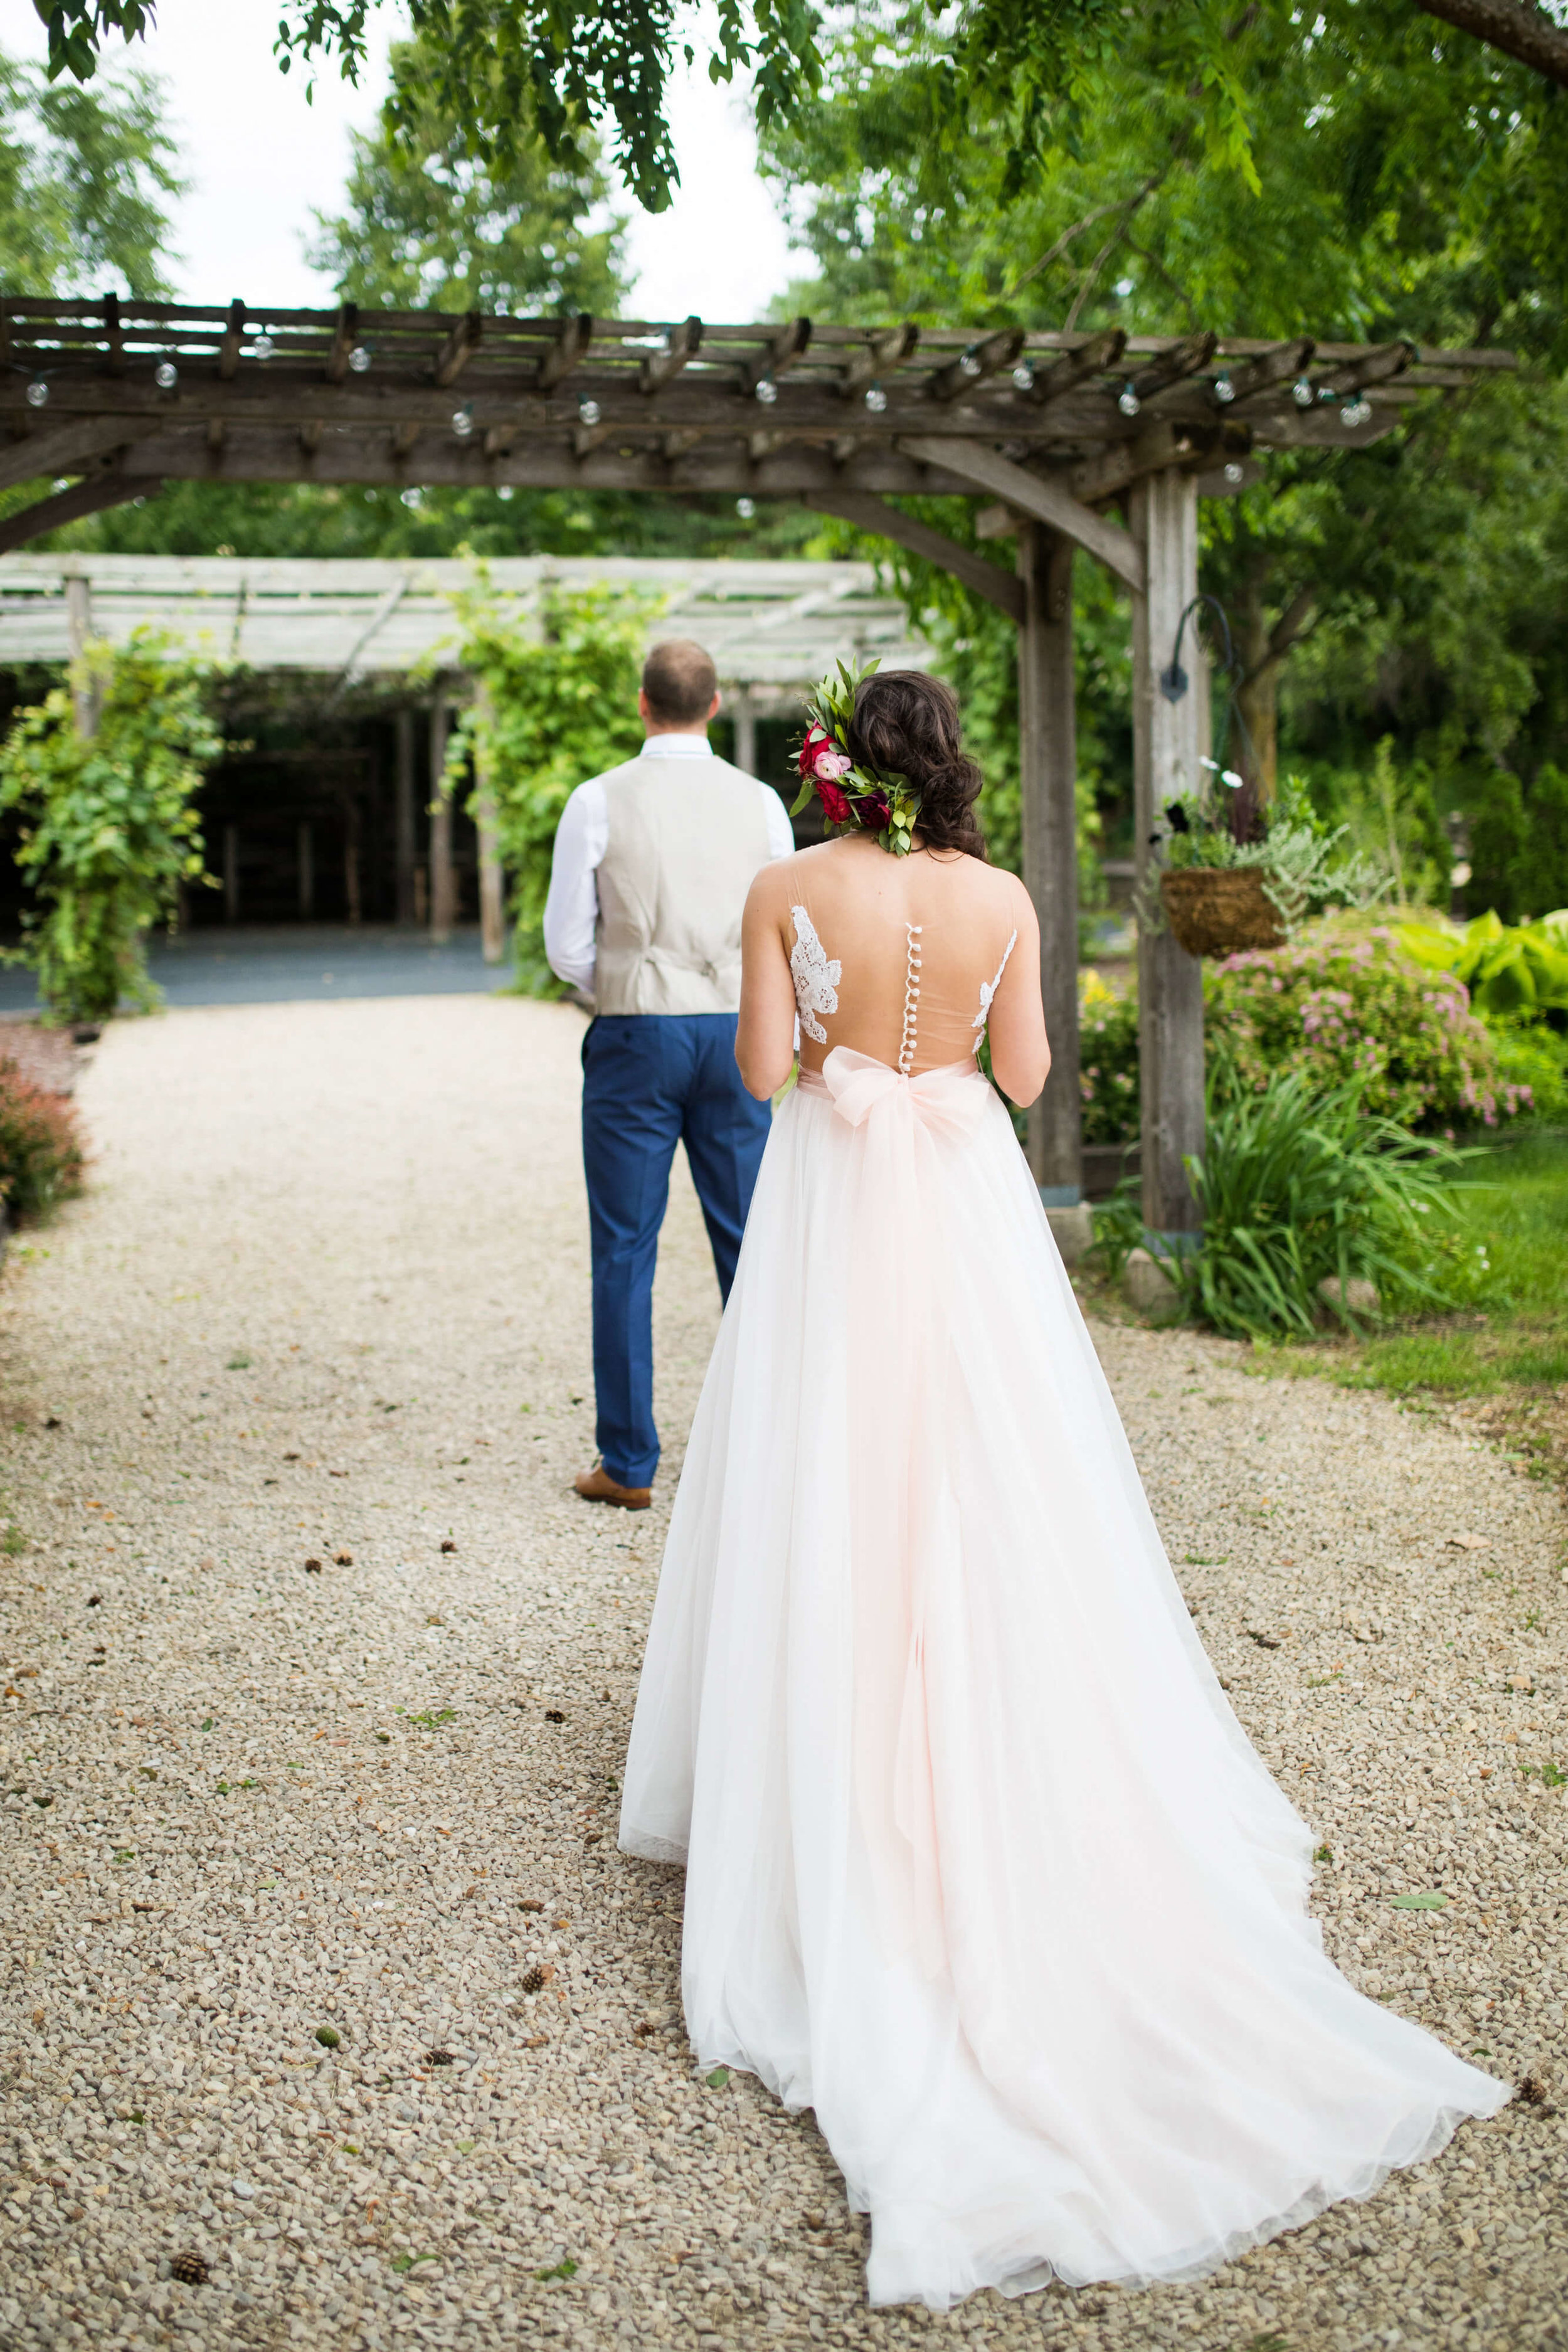 Studio KH wedding photographer | Sixpence Events and Planning, free wedding blog, free wedding help, free wedding advice |  bride walking to first look at Gardens of Castle Rock with sheer back  buttons showing | groom in taupe vest with navy pants